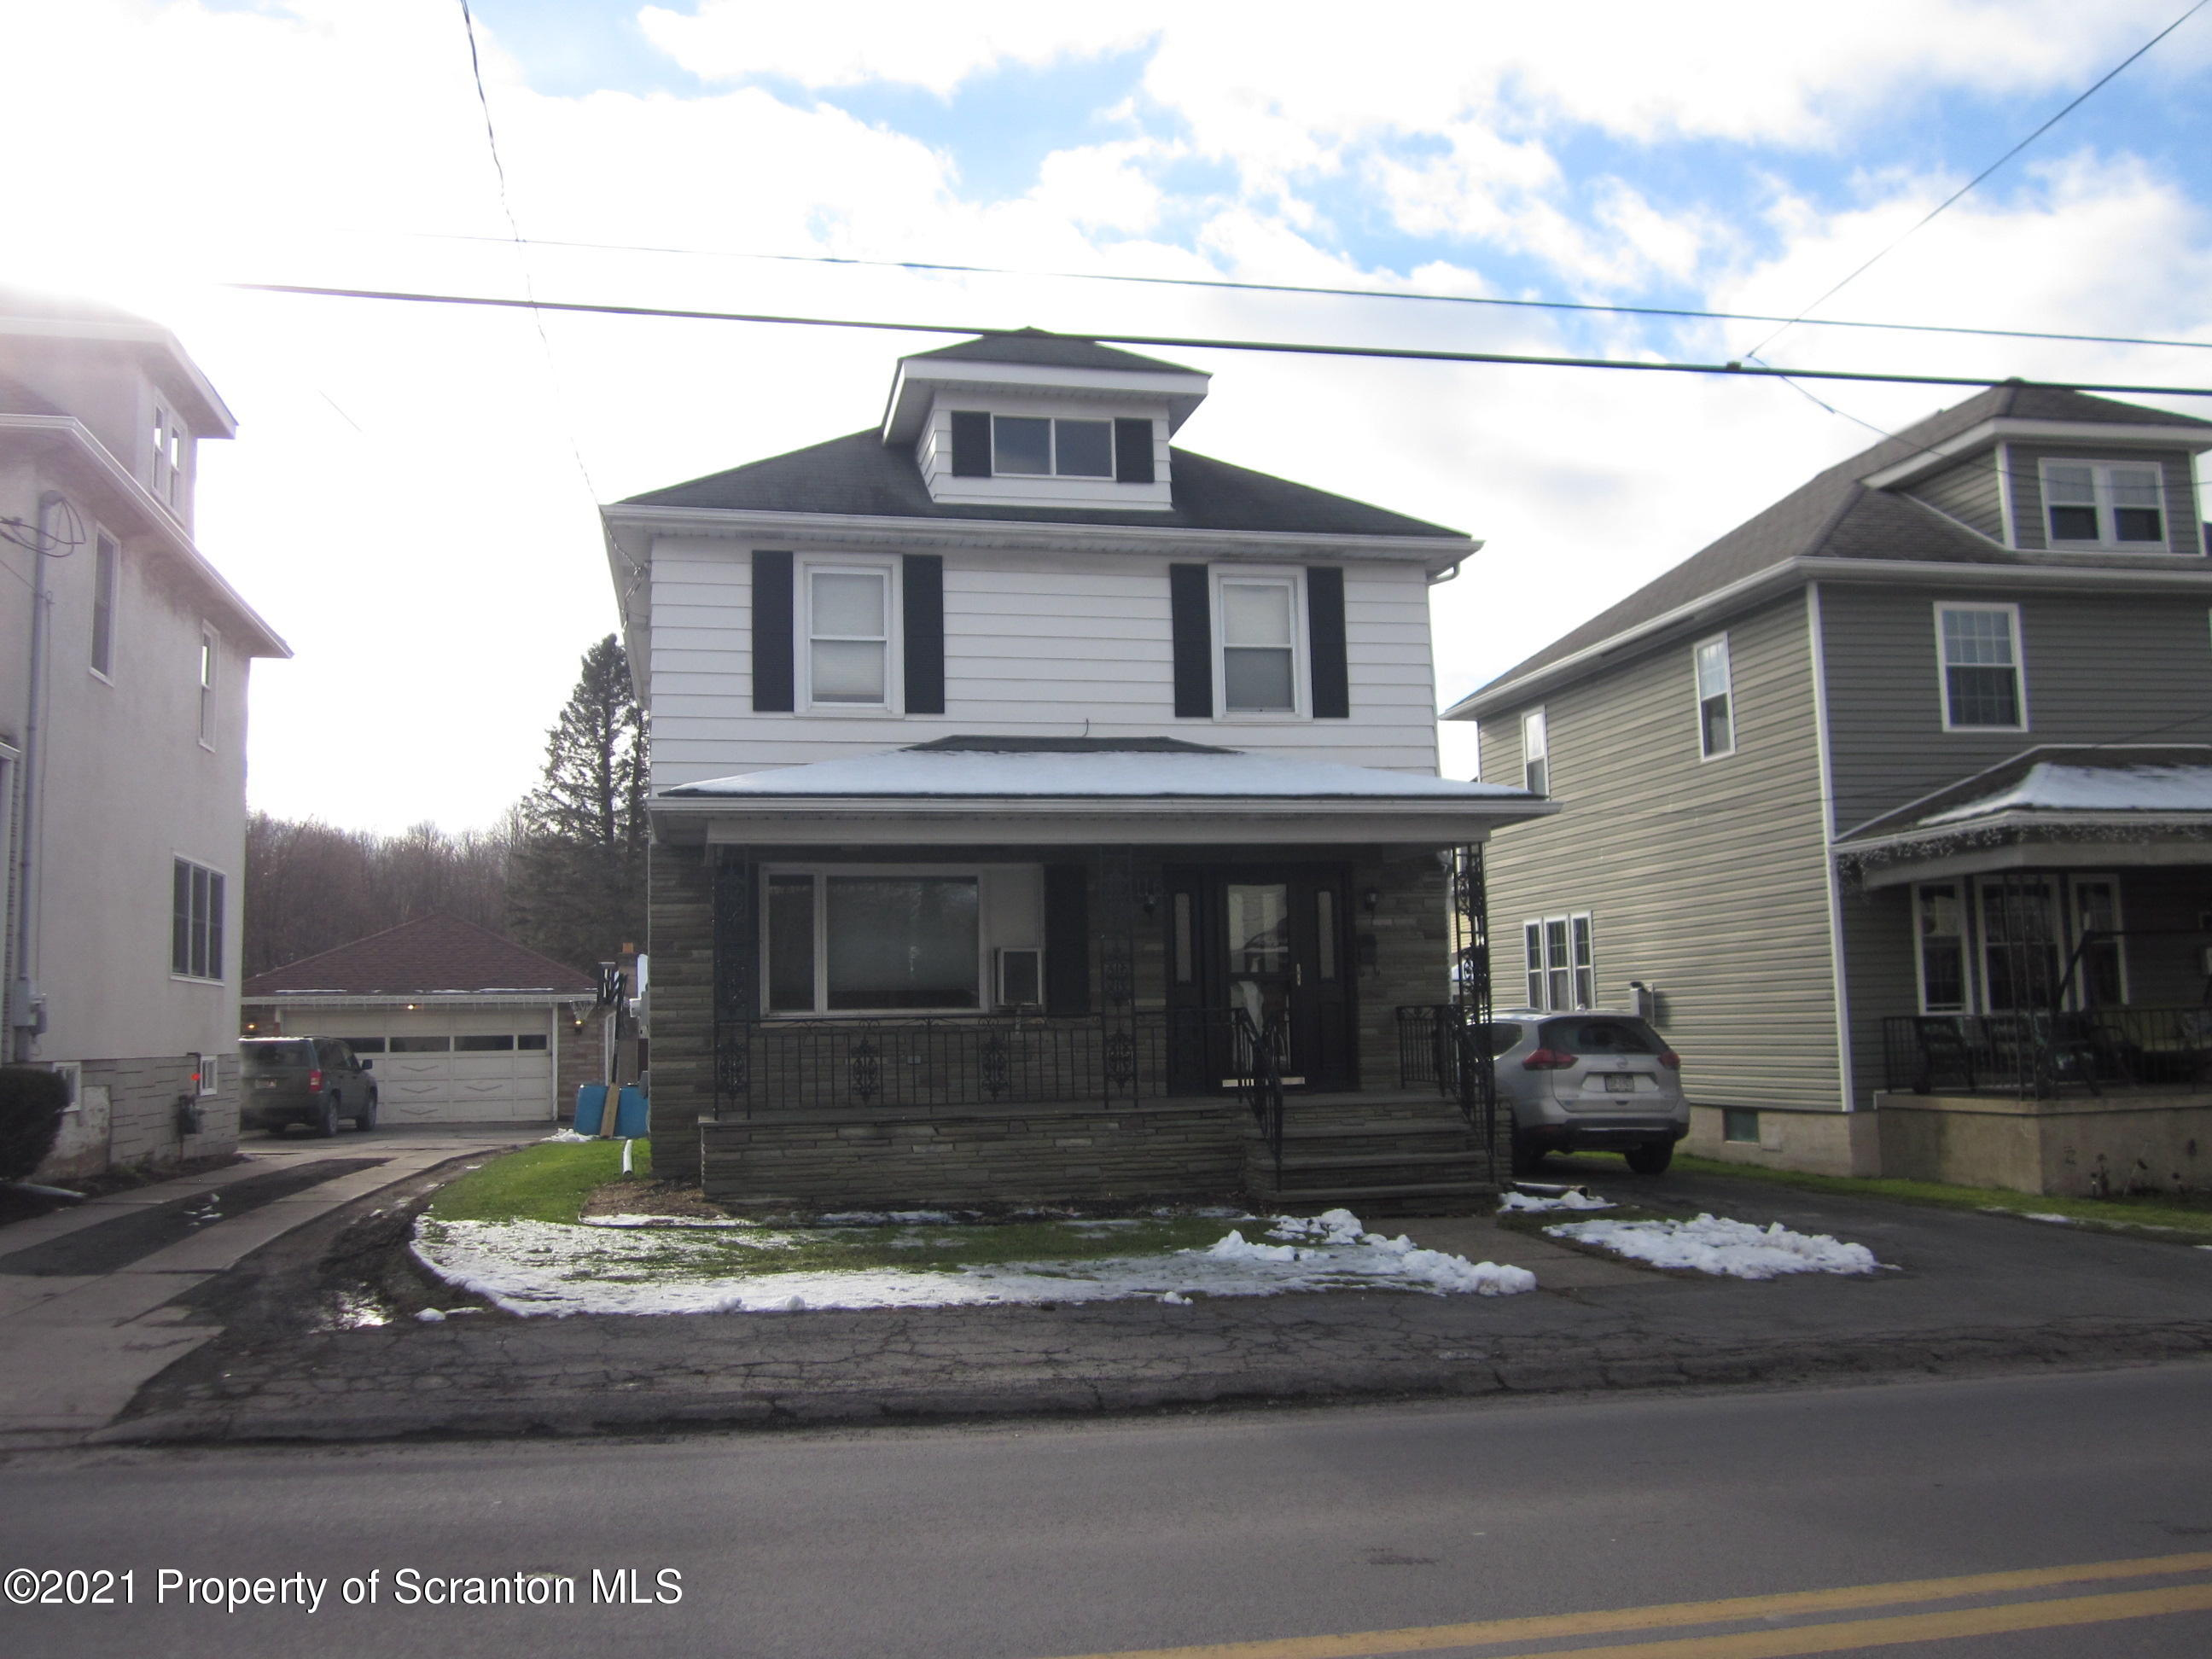 116 Hill St, Jessup, Pennsylvania 18434, 3 Bedrooms Bedrooms, 6 Rooms Rooms,2 BathroomsBathrooms,Single Family,For Sale,Hill,21-62